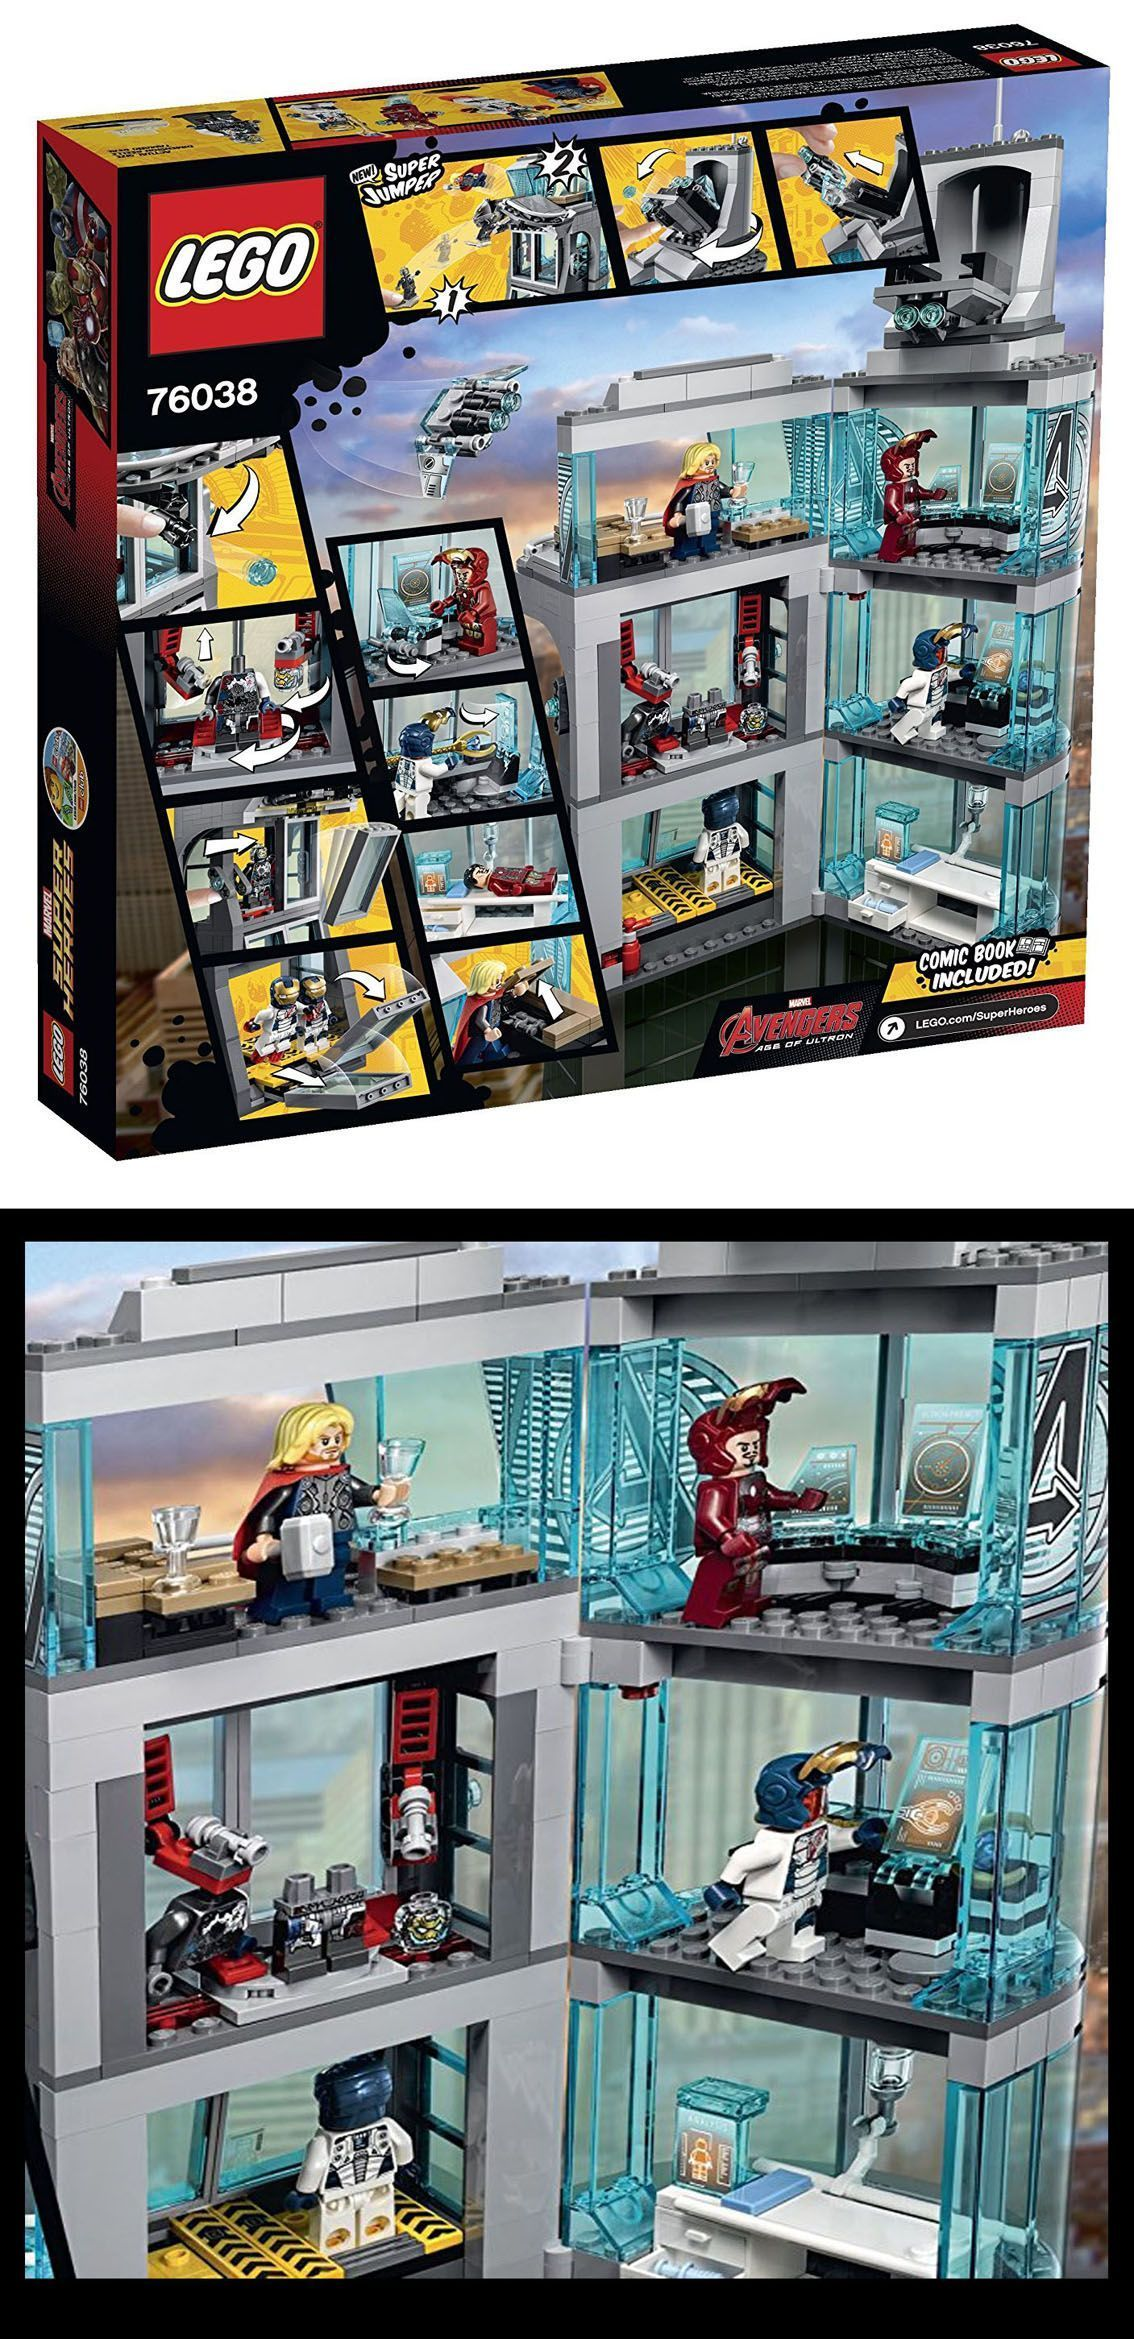 LEGO Avengers Super Heroes Attack on Tower 119.70 on